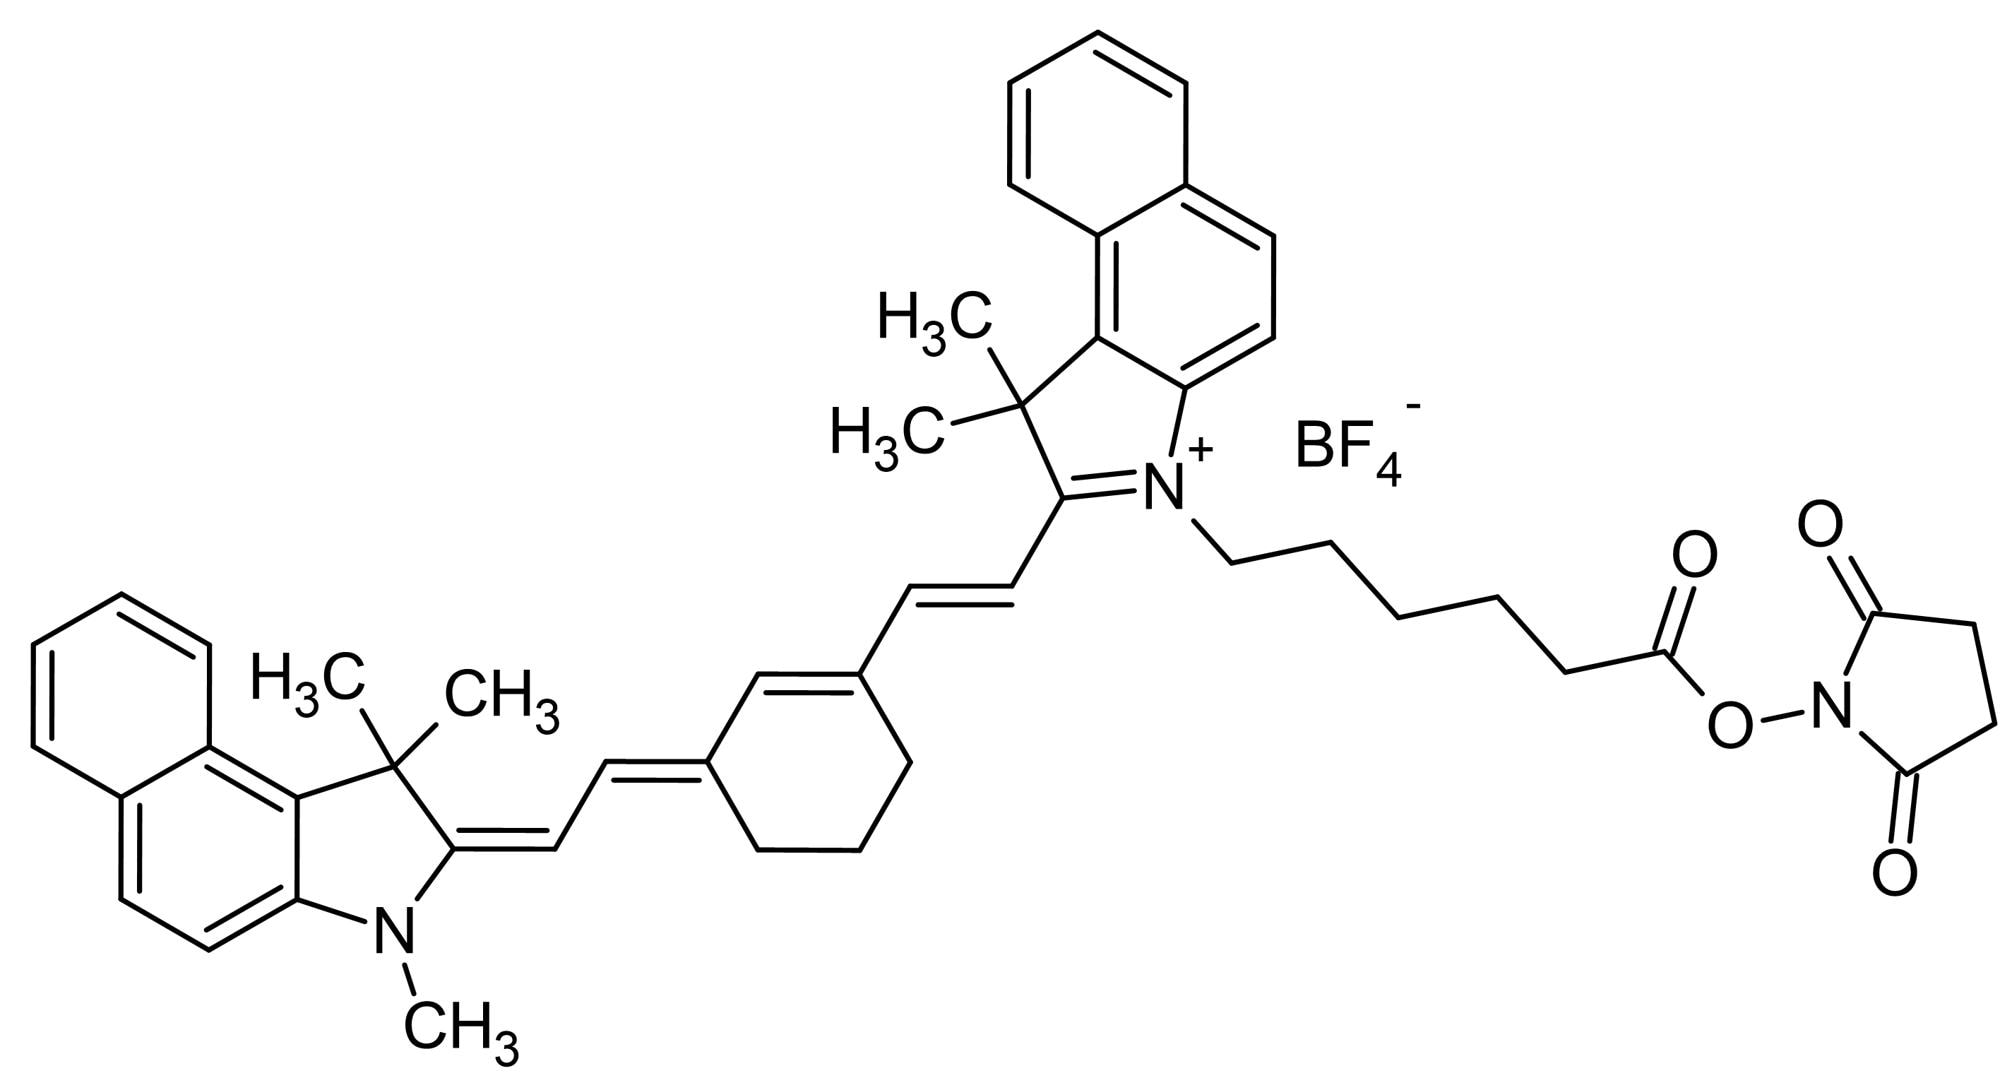 Chemical Structure - Cyanine7.5 NHS ester, Amine- reactive NIR emitting fluorescent dye (ab146457)